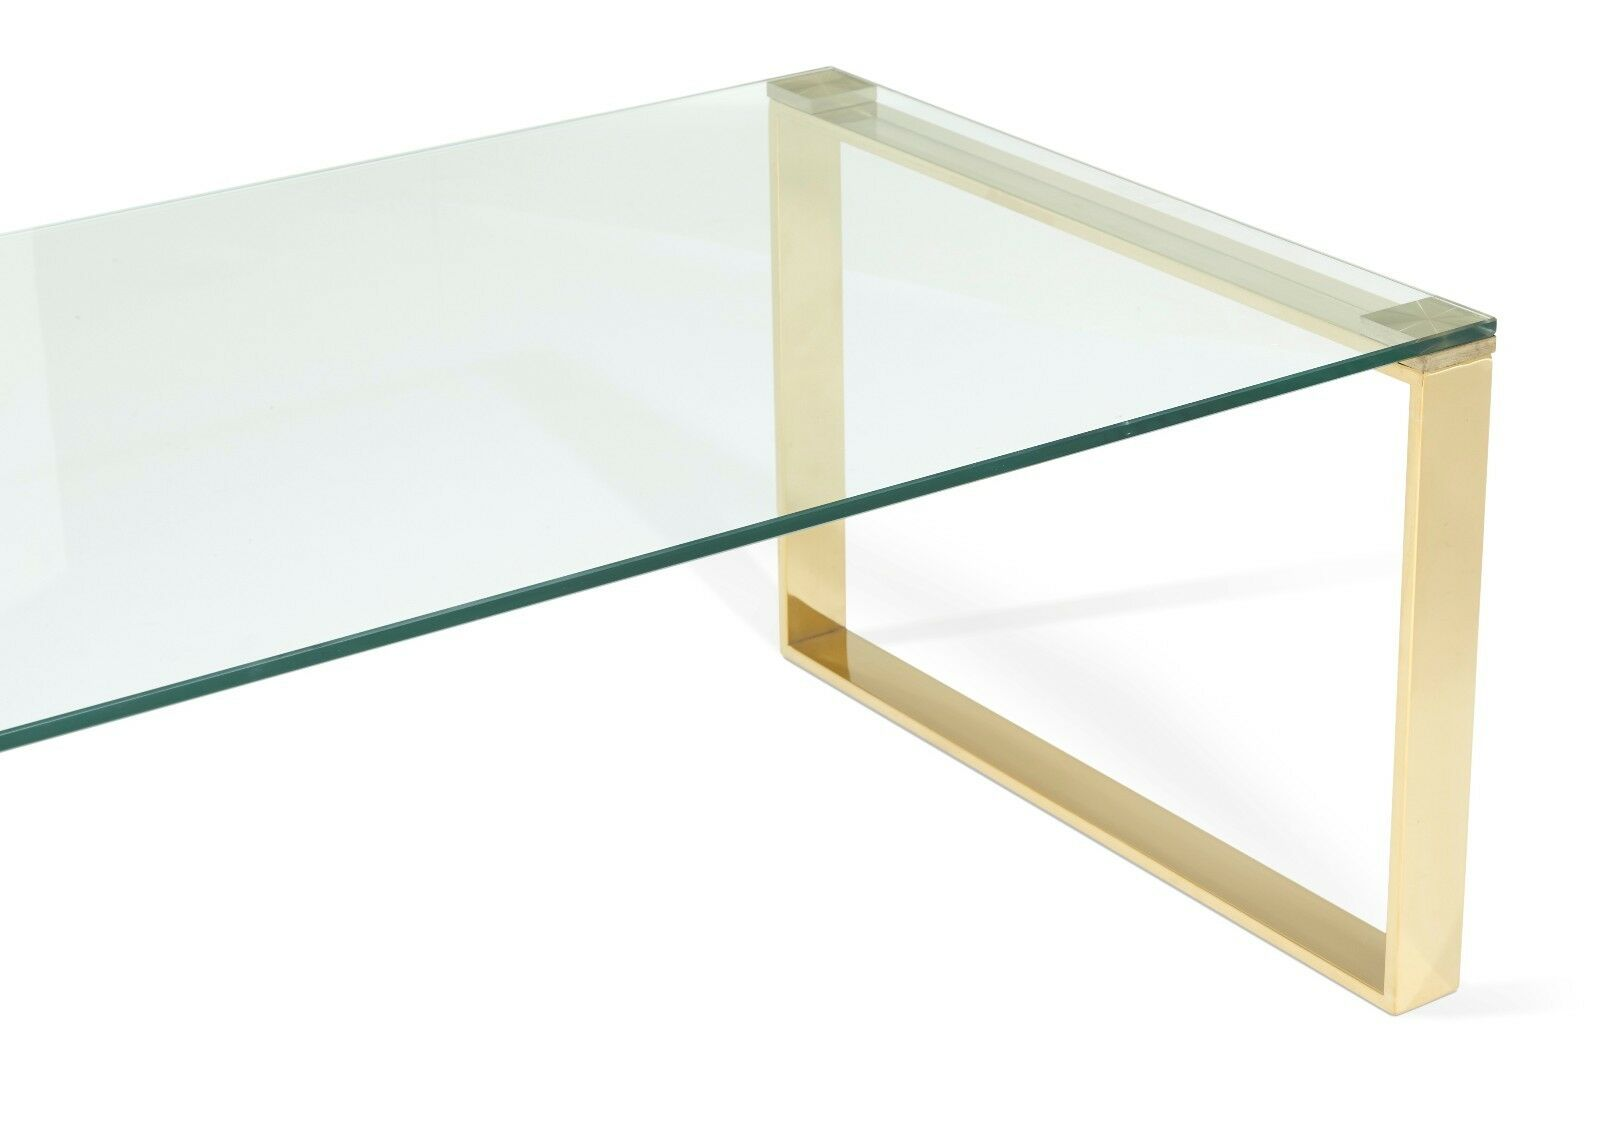 Asger glass top coffee table in steel gold or rose gold for Metal frame glass coffee table